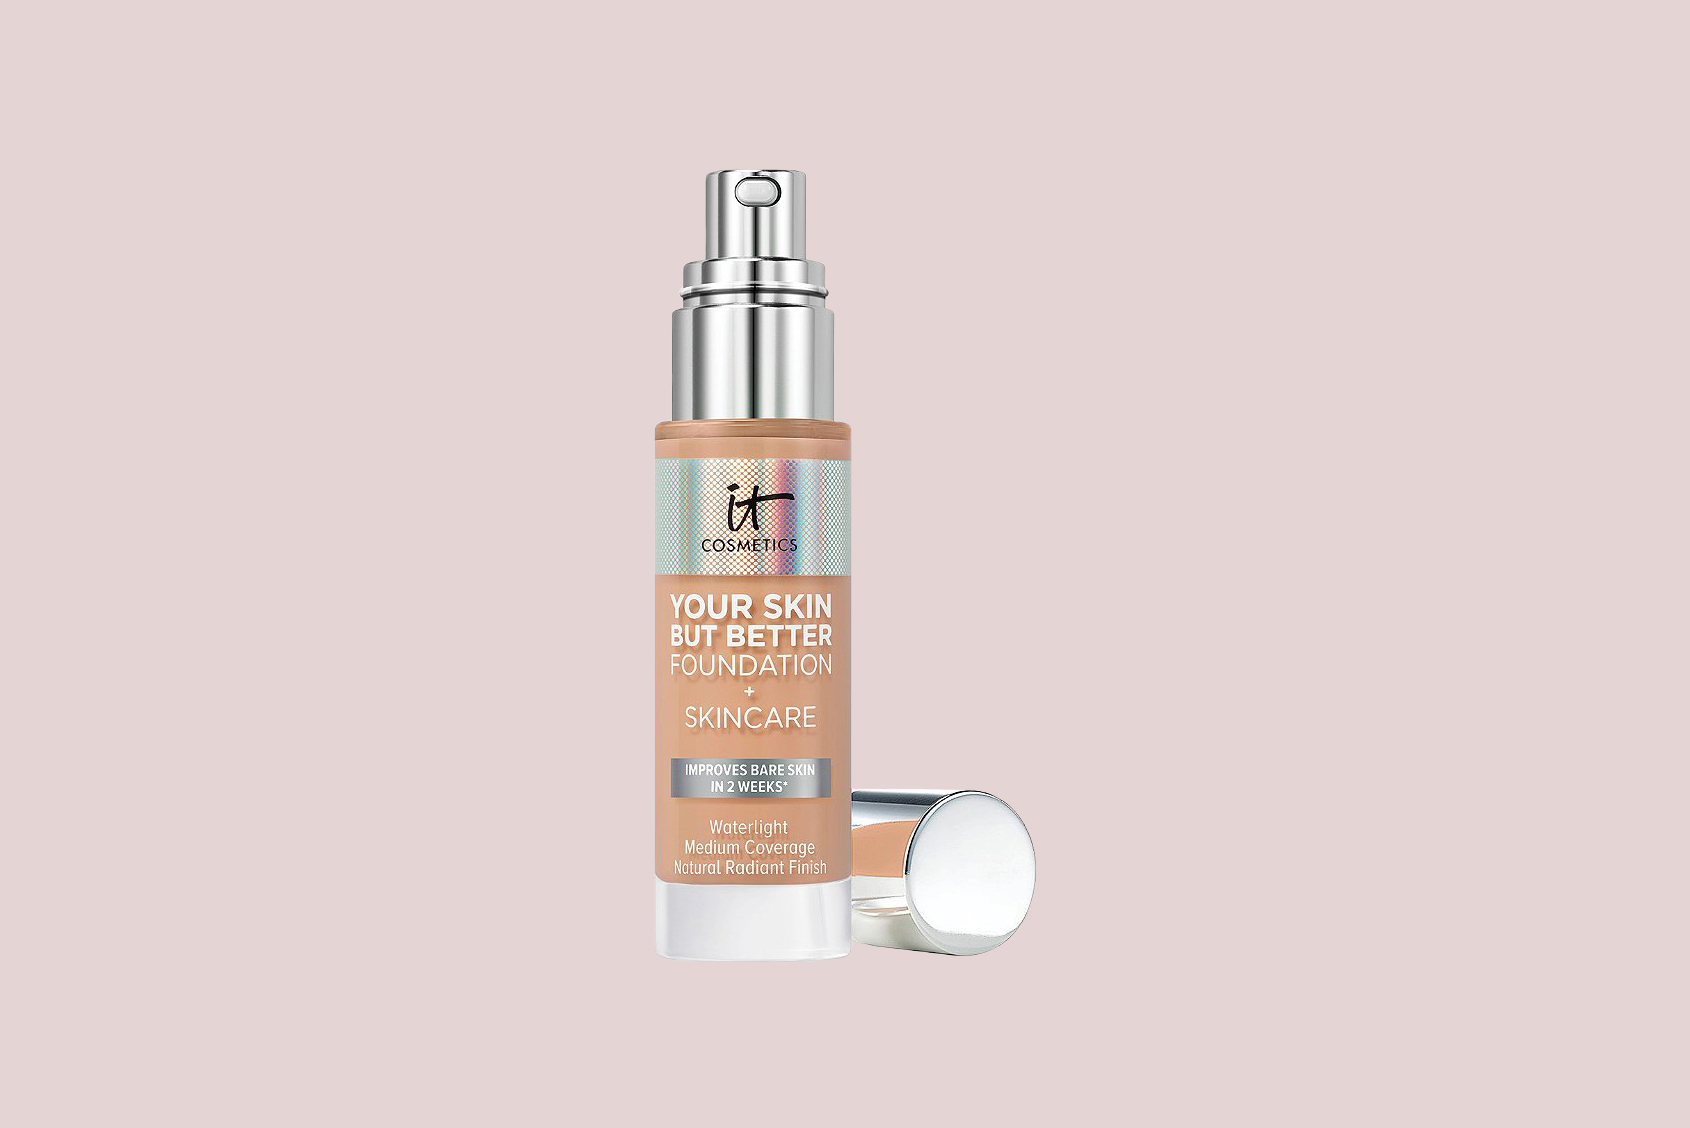 IT Cosmetics Your Skin But Better Foundation + Skincare